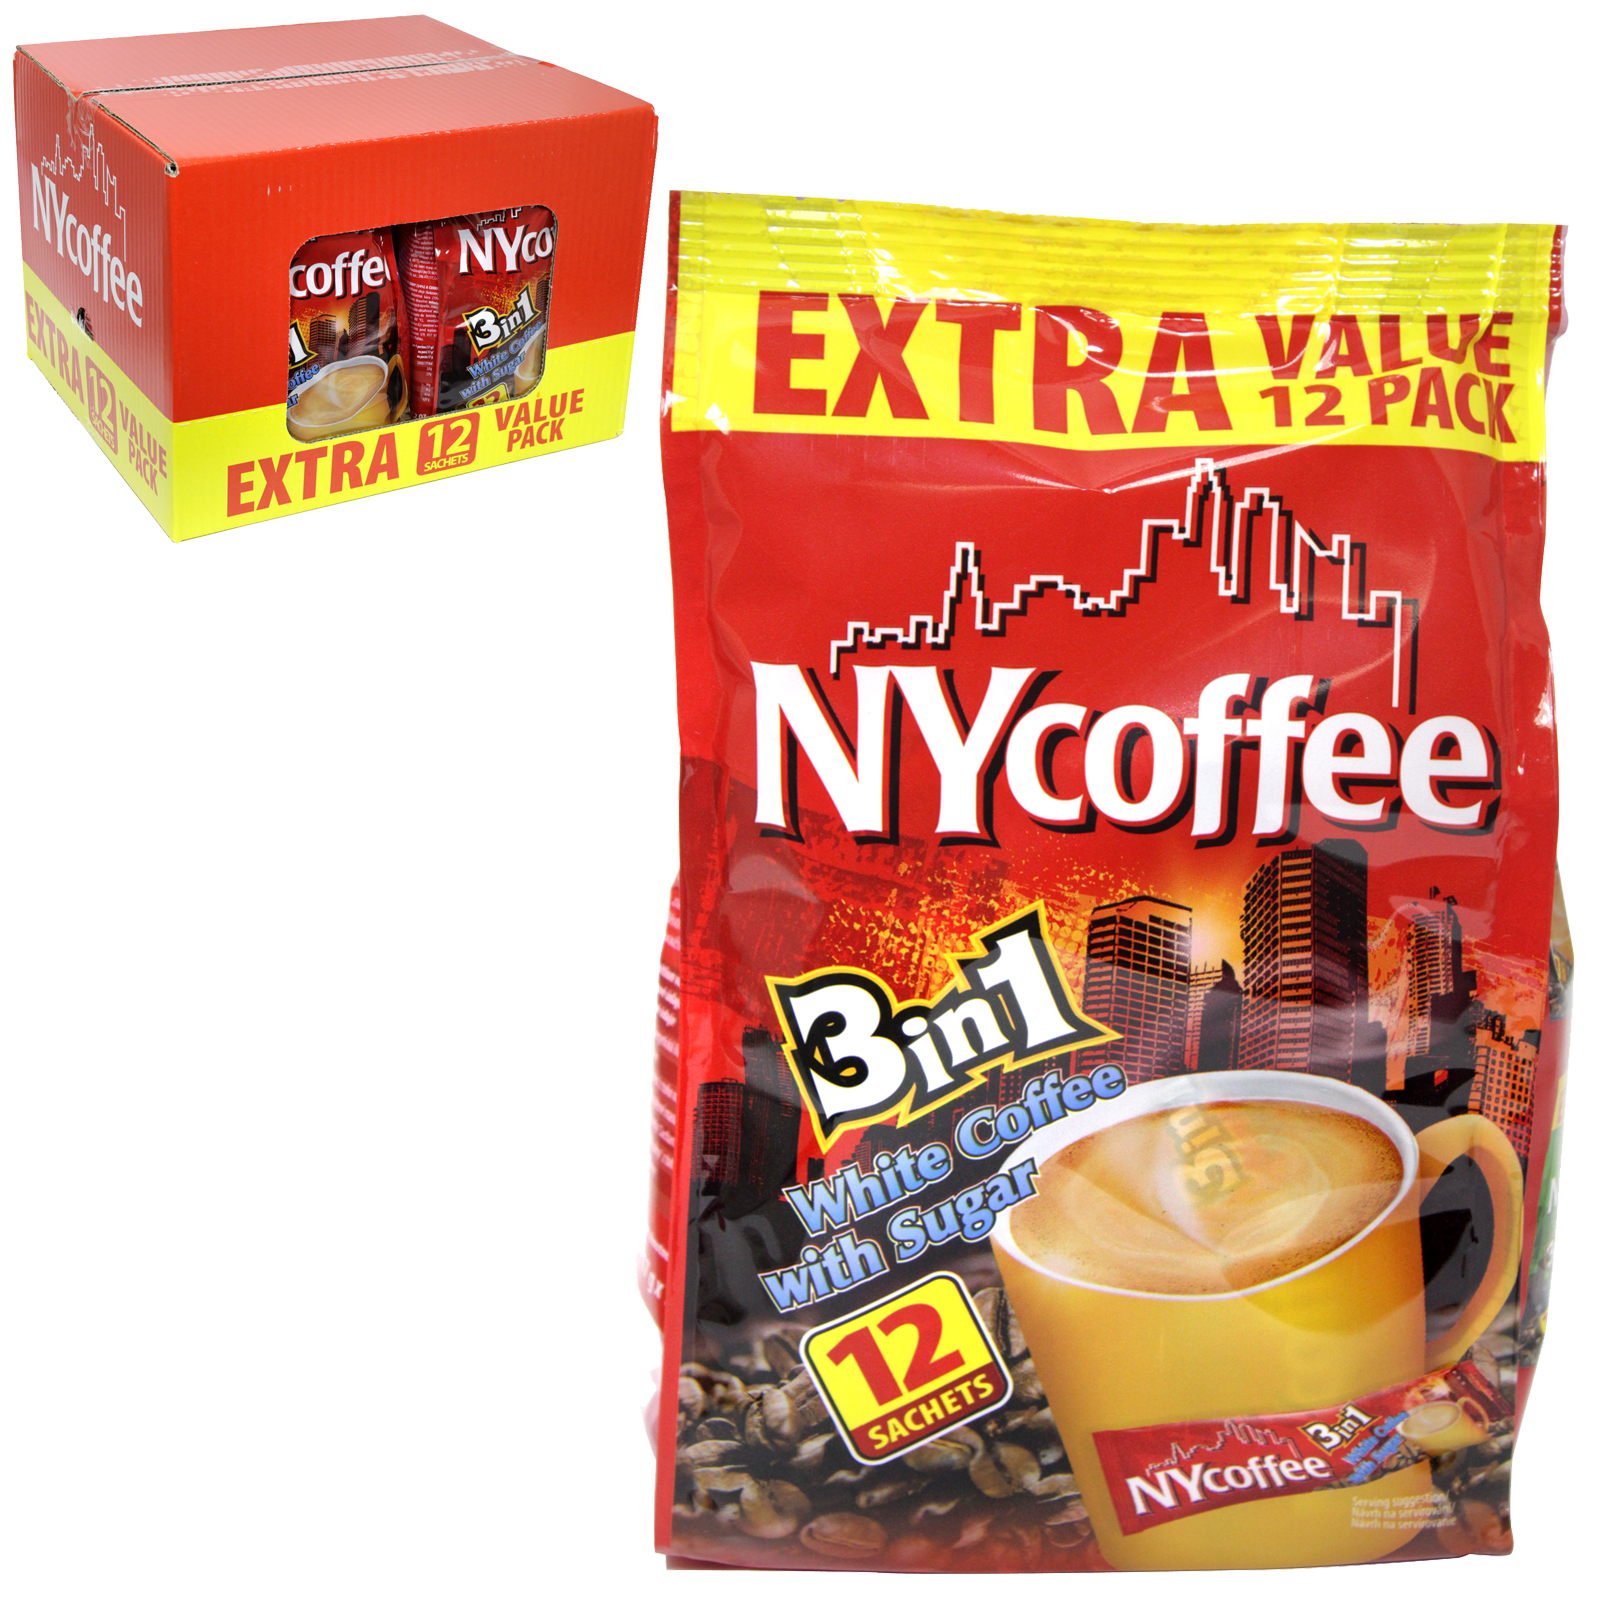 NY COFFEE 3IN1 12 SACHET PACK X8